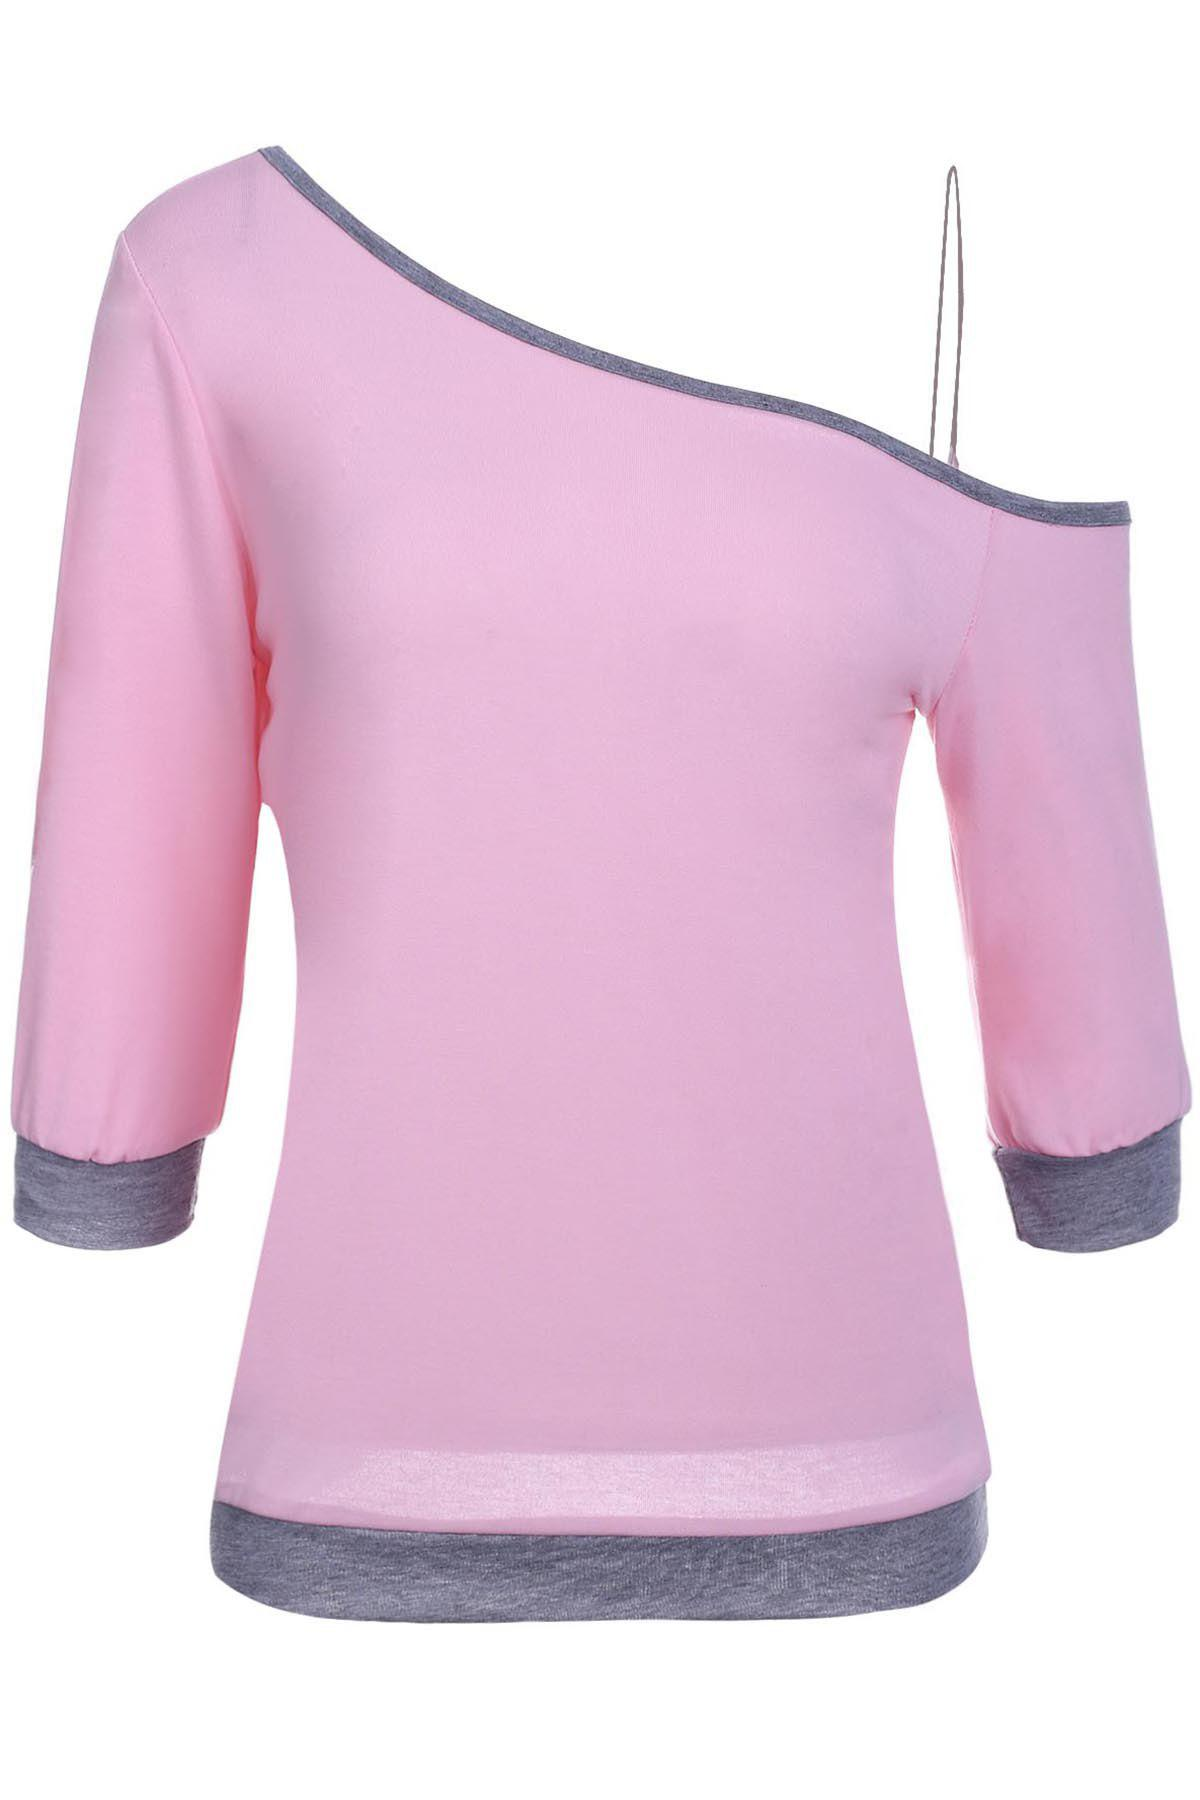 Stylish 3/4 Sleeve Skew Neck Hit Color Women's T-Shirt - PINK M